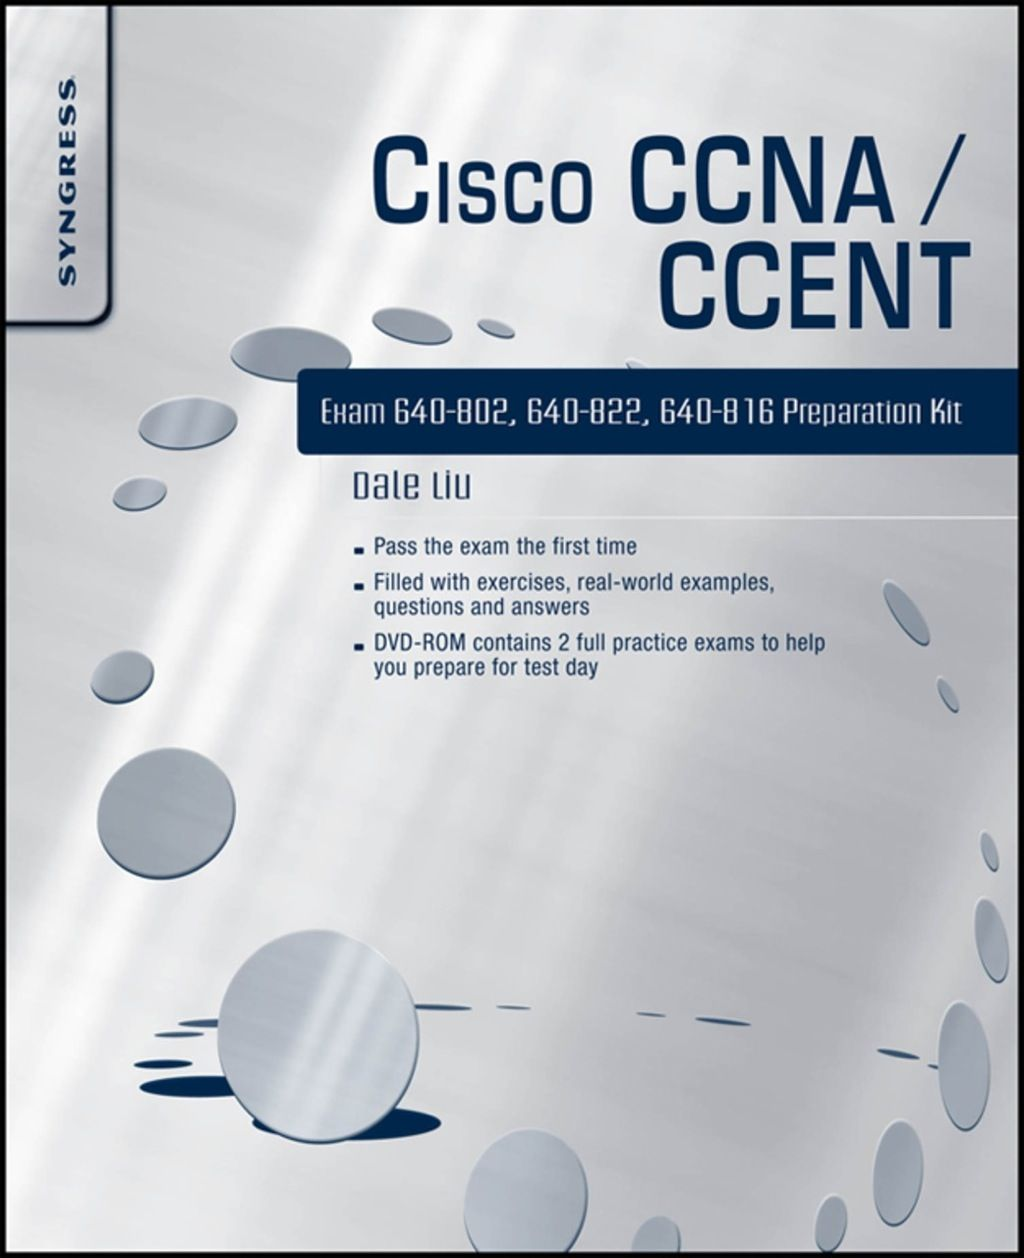 Cisco Ccna Ccent Exam 640 802 640 822 640 816 Preparation Kit Ebook Study Guide Ebook Study